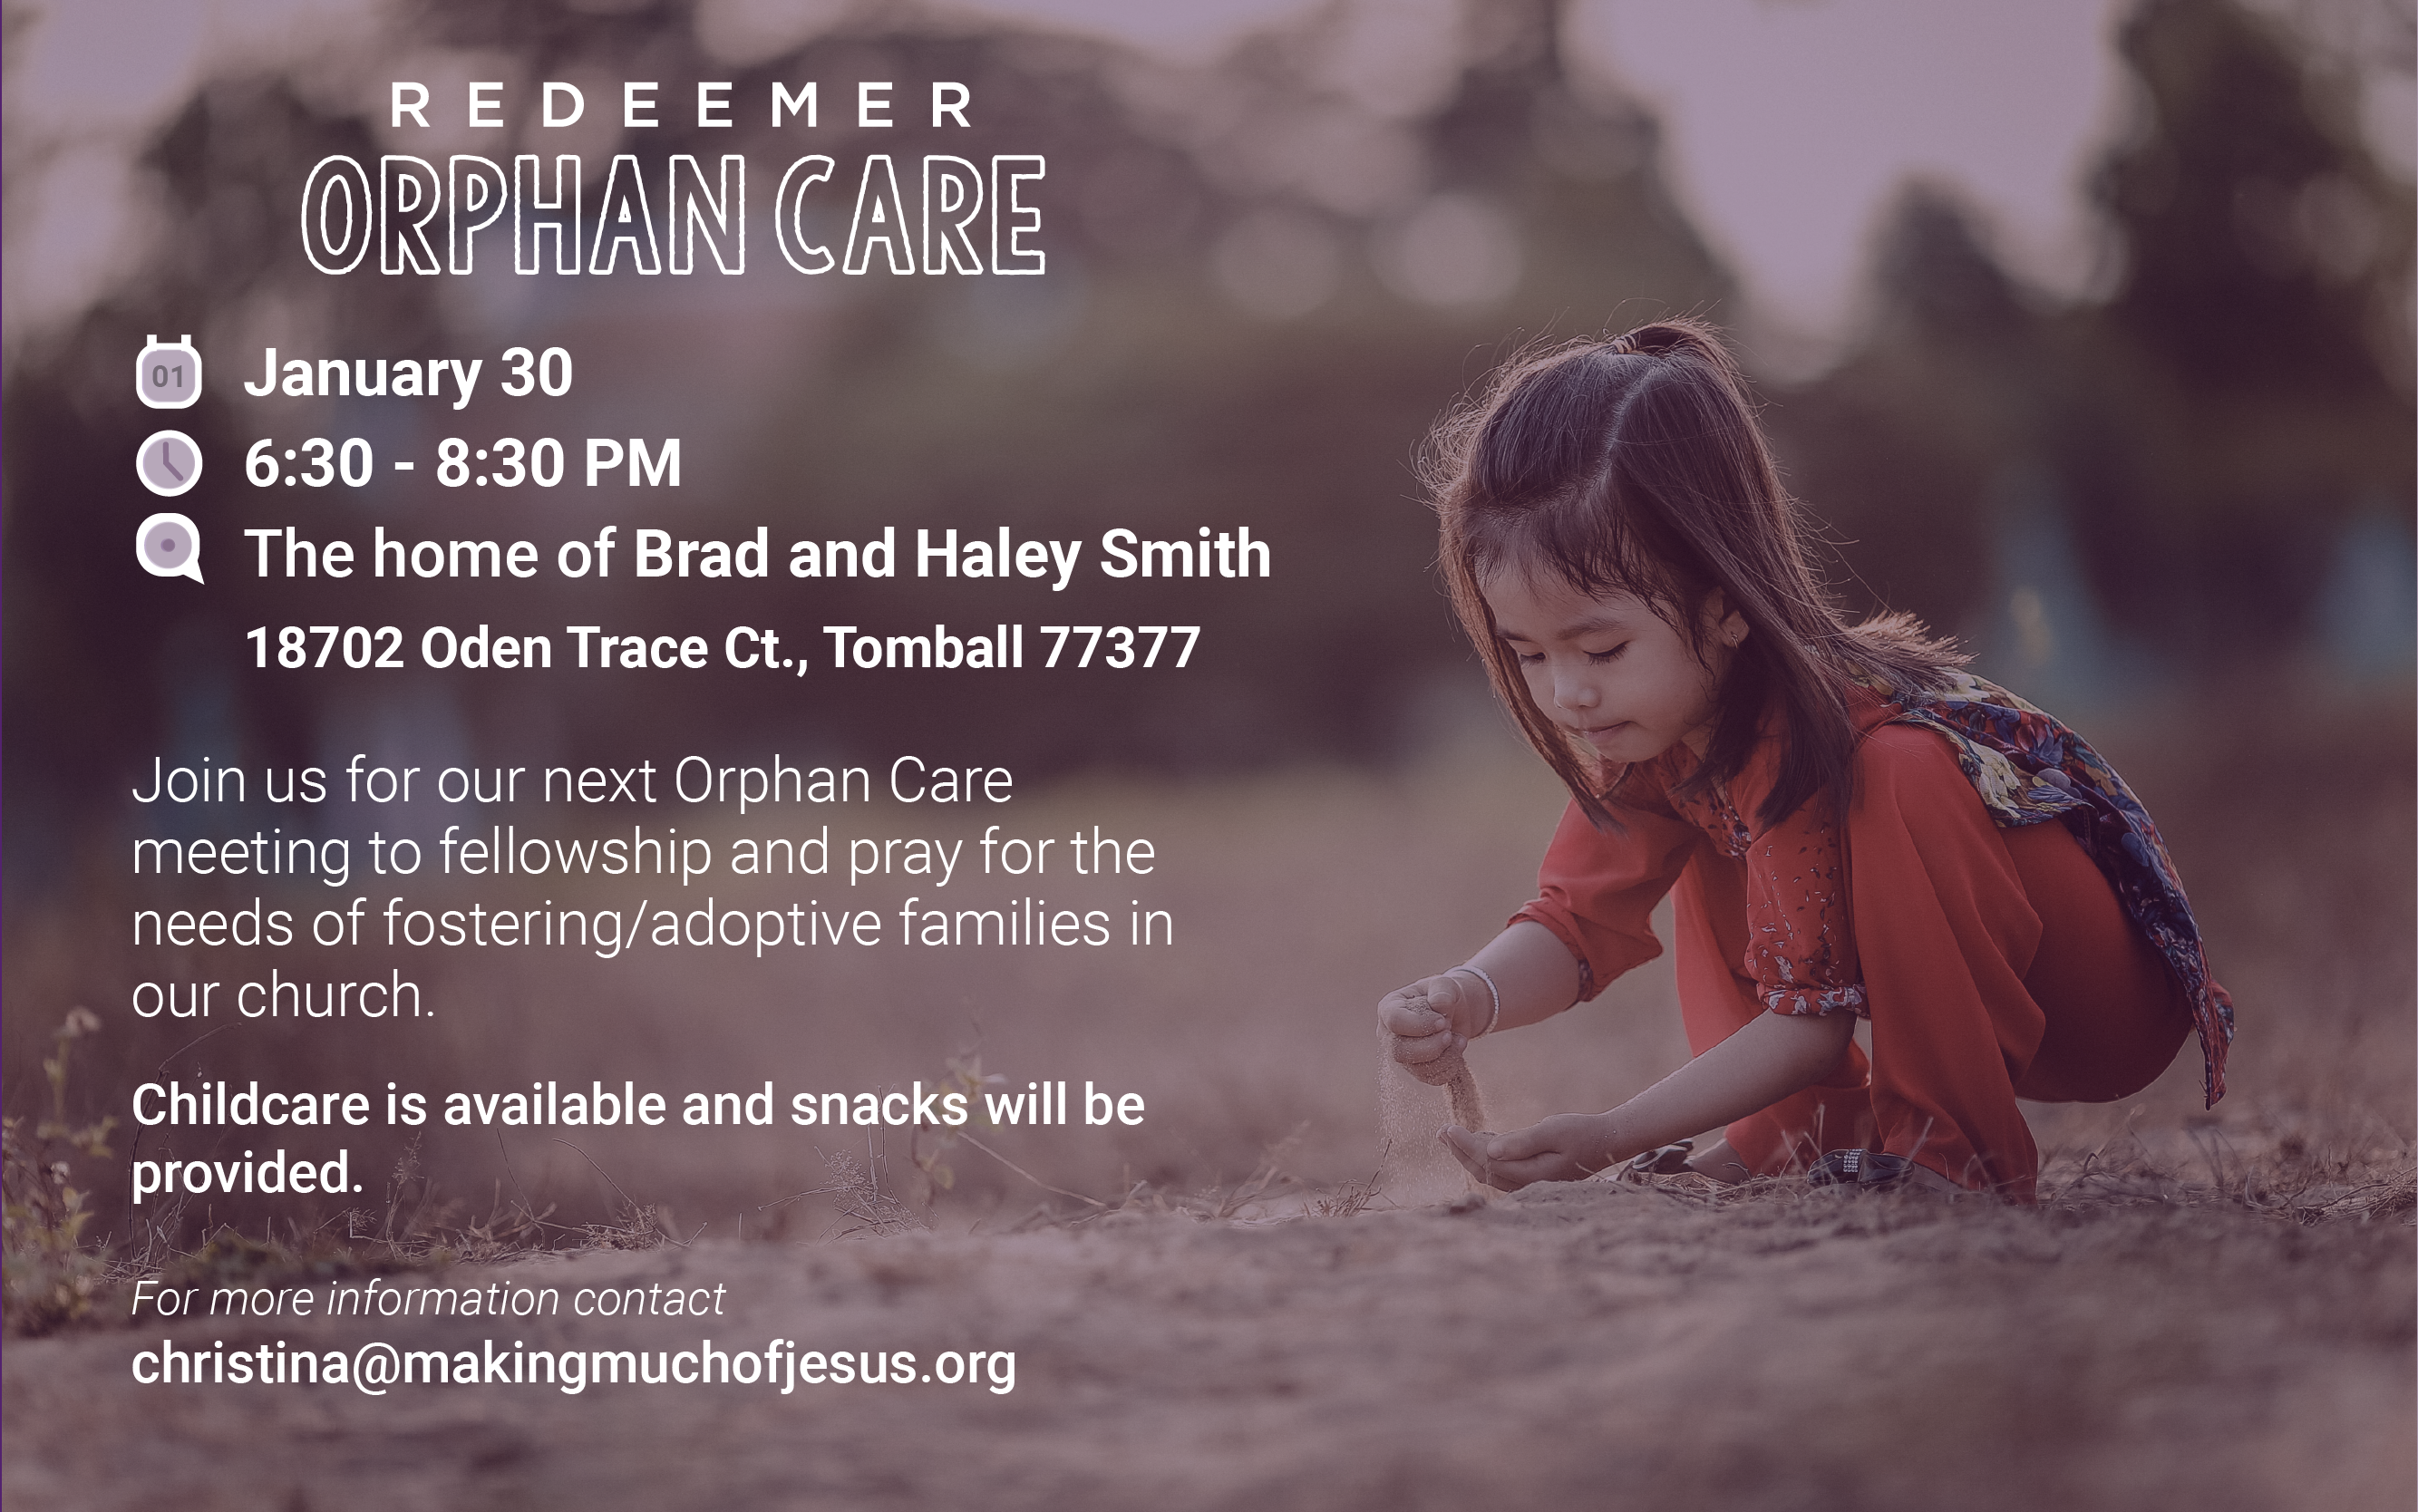 Redeemer Orphan Care Meetings- 01.30.20-01